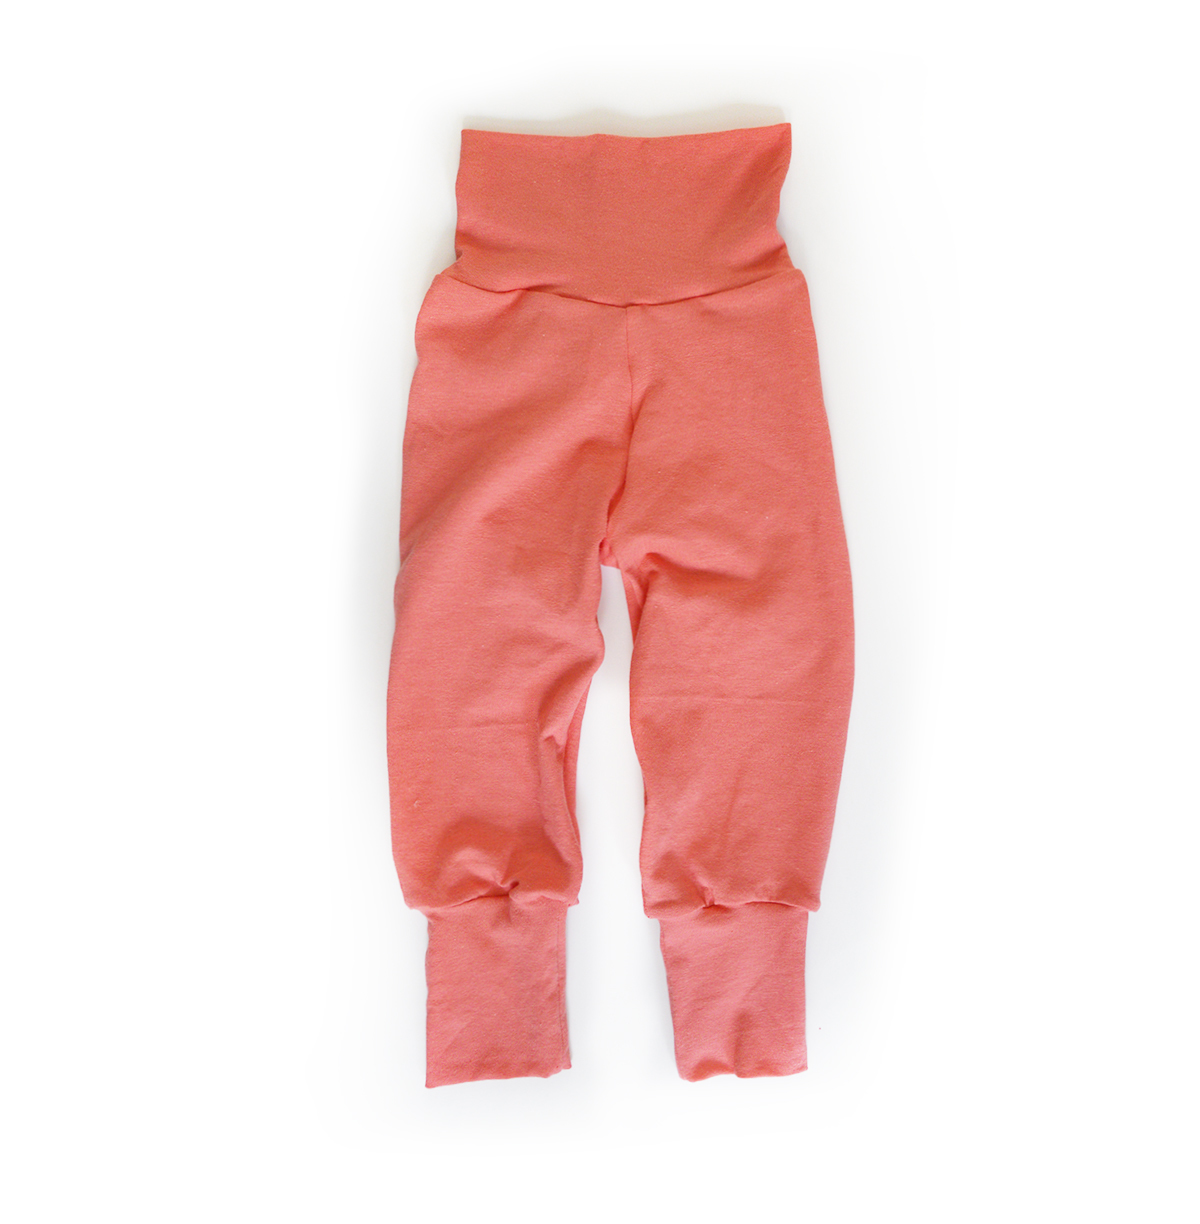 Little Sprout Pants™ Coral 00481